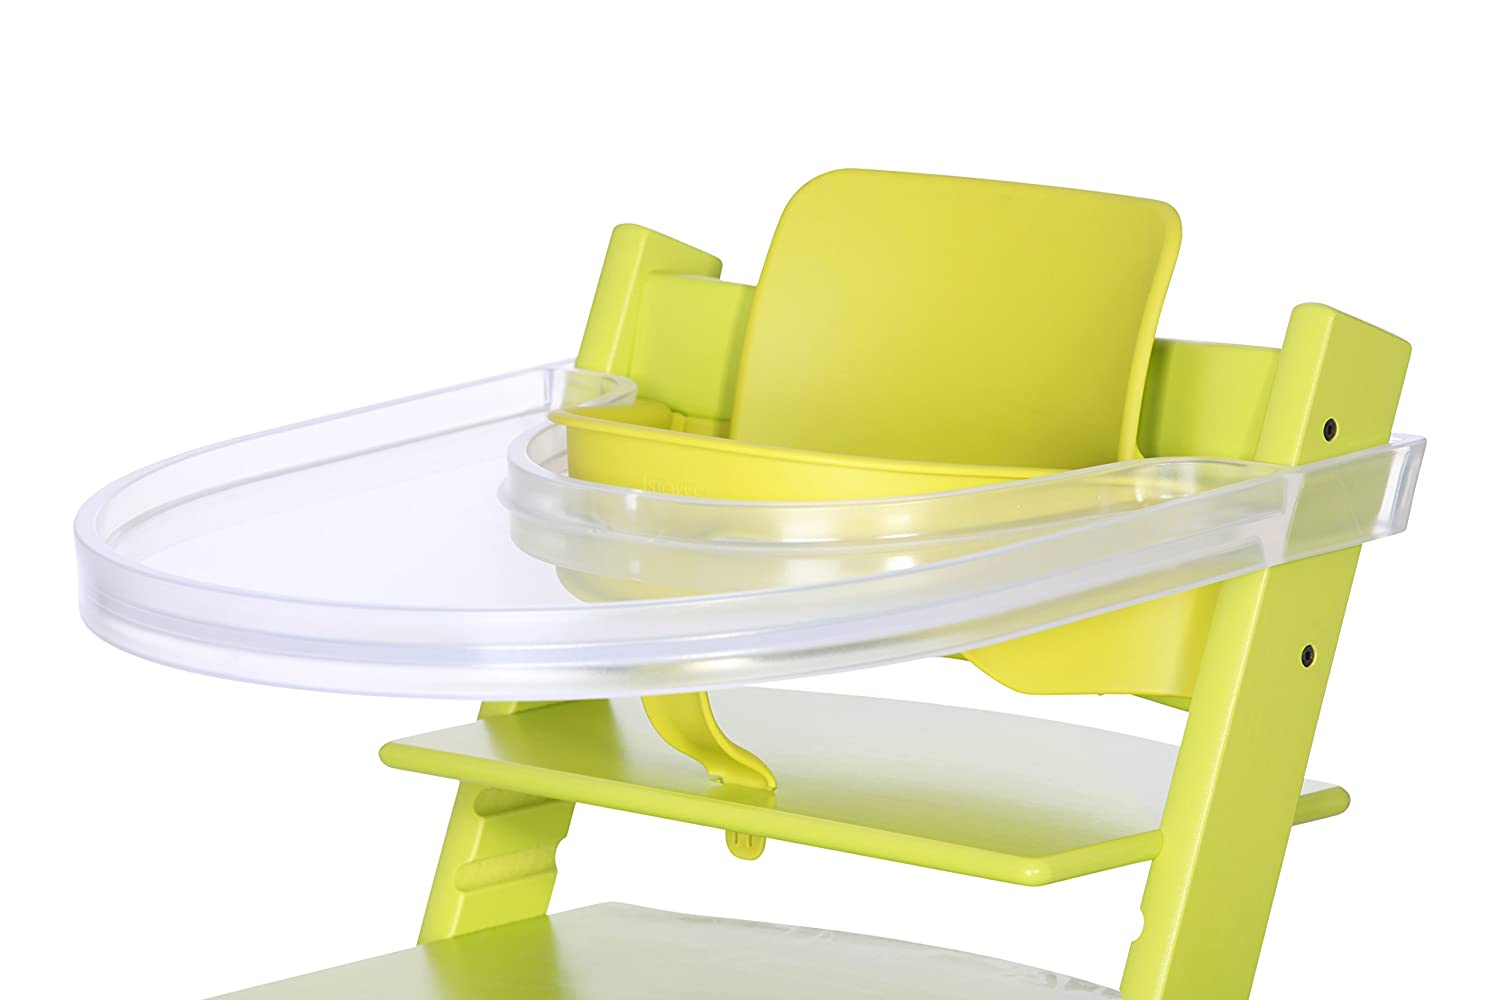 PlayTray for the Stokke Tripp Trapp - Transparent 0727060